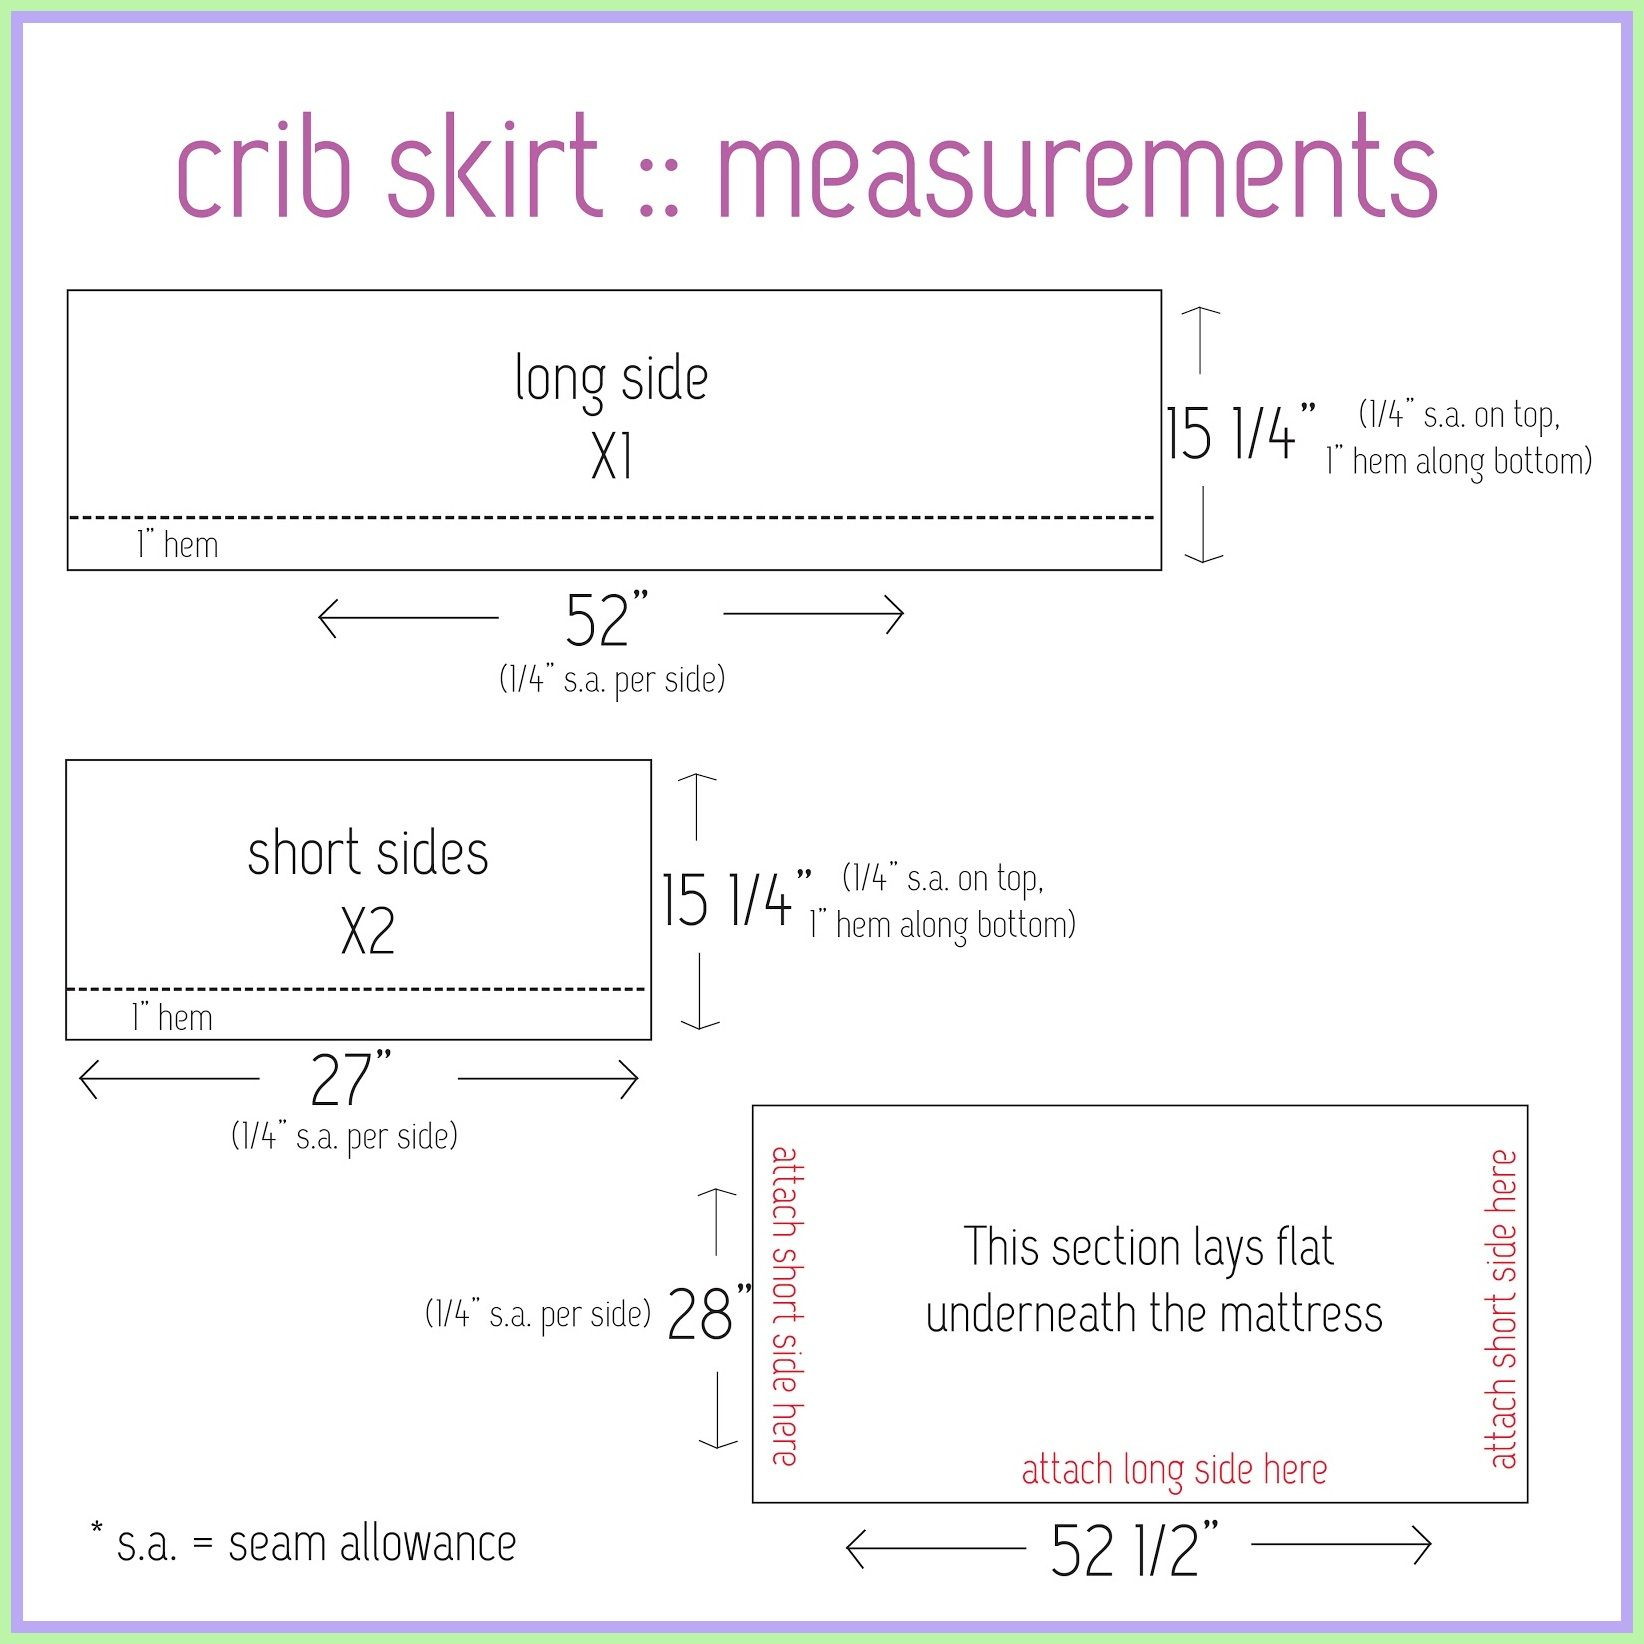 123 Reference Of Crib Mattress Sizes Chart In 2020 Crib Bed Skirt Baby Crib Skirts Baby Cribs